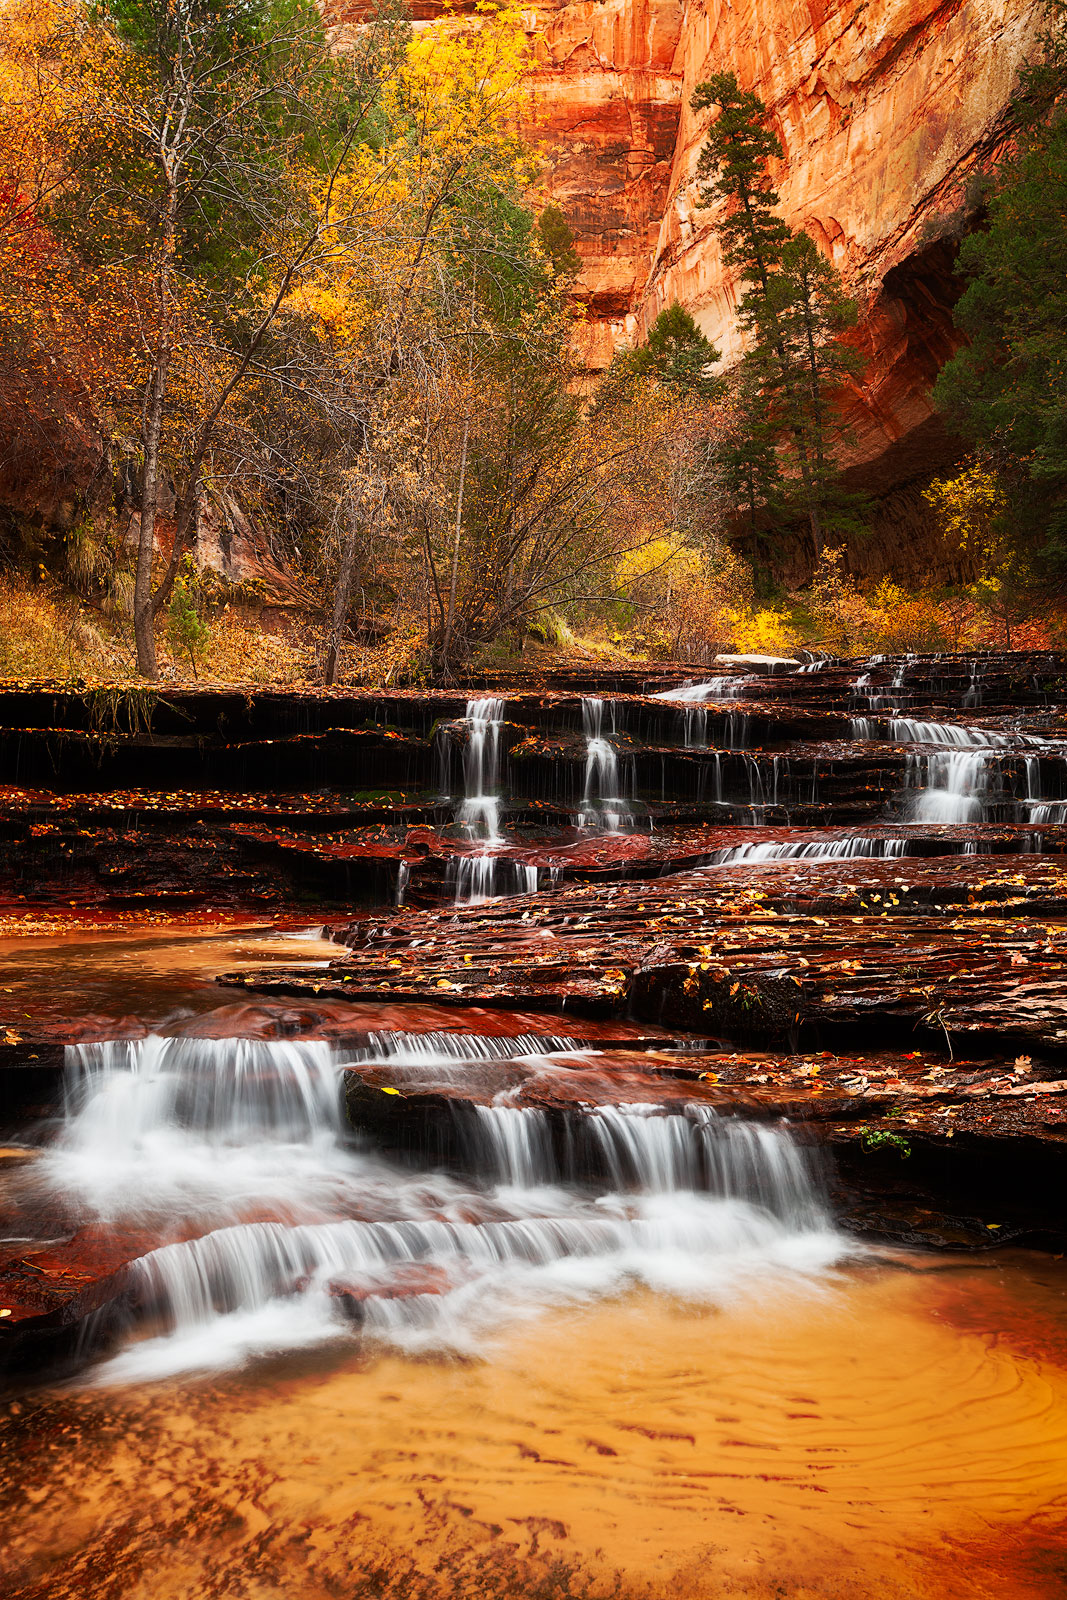 america,arch angel,arch angel falls,archangel,autumn,cascades,colors,fall,foliage,north america,southwest,united states,us,usa,utah,vertical,zion national park, photo